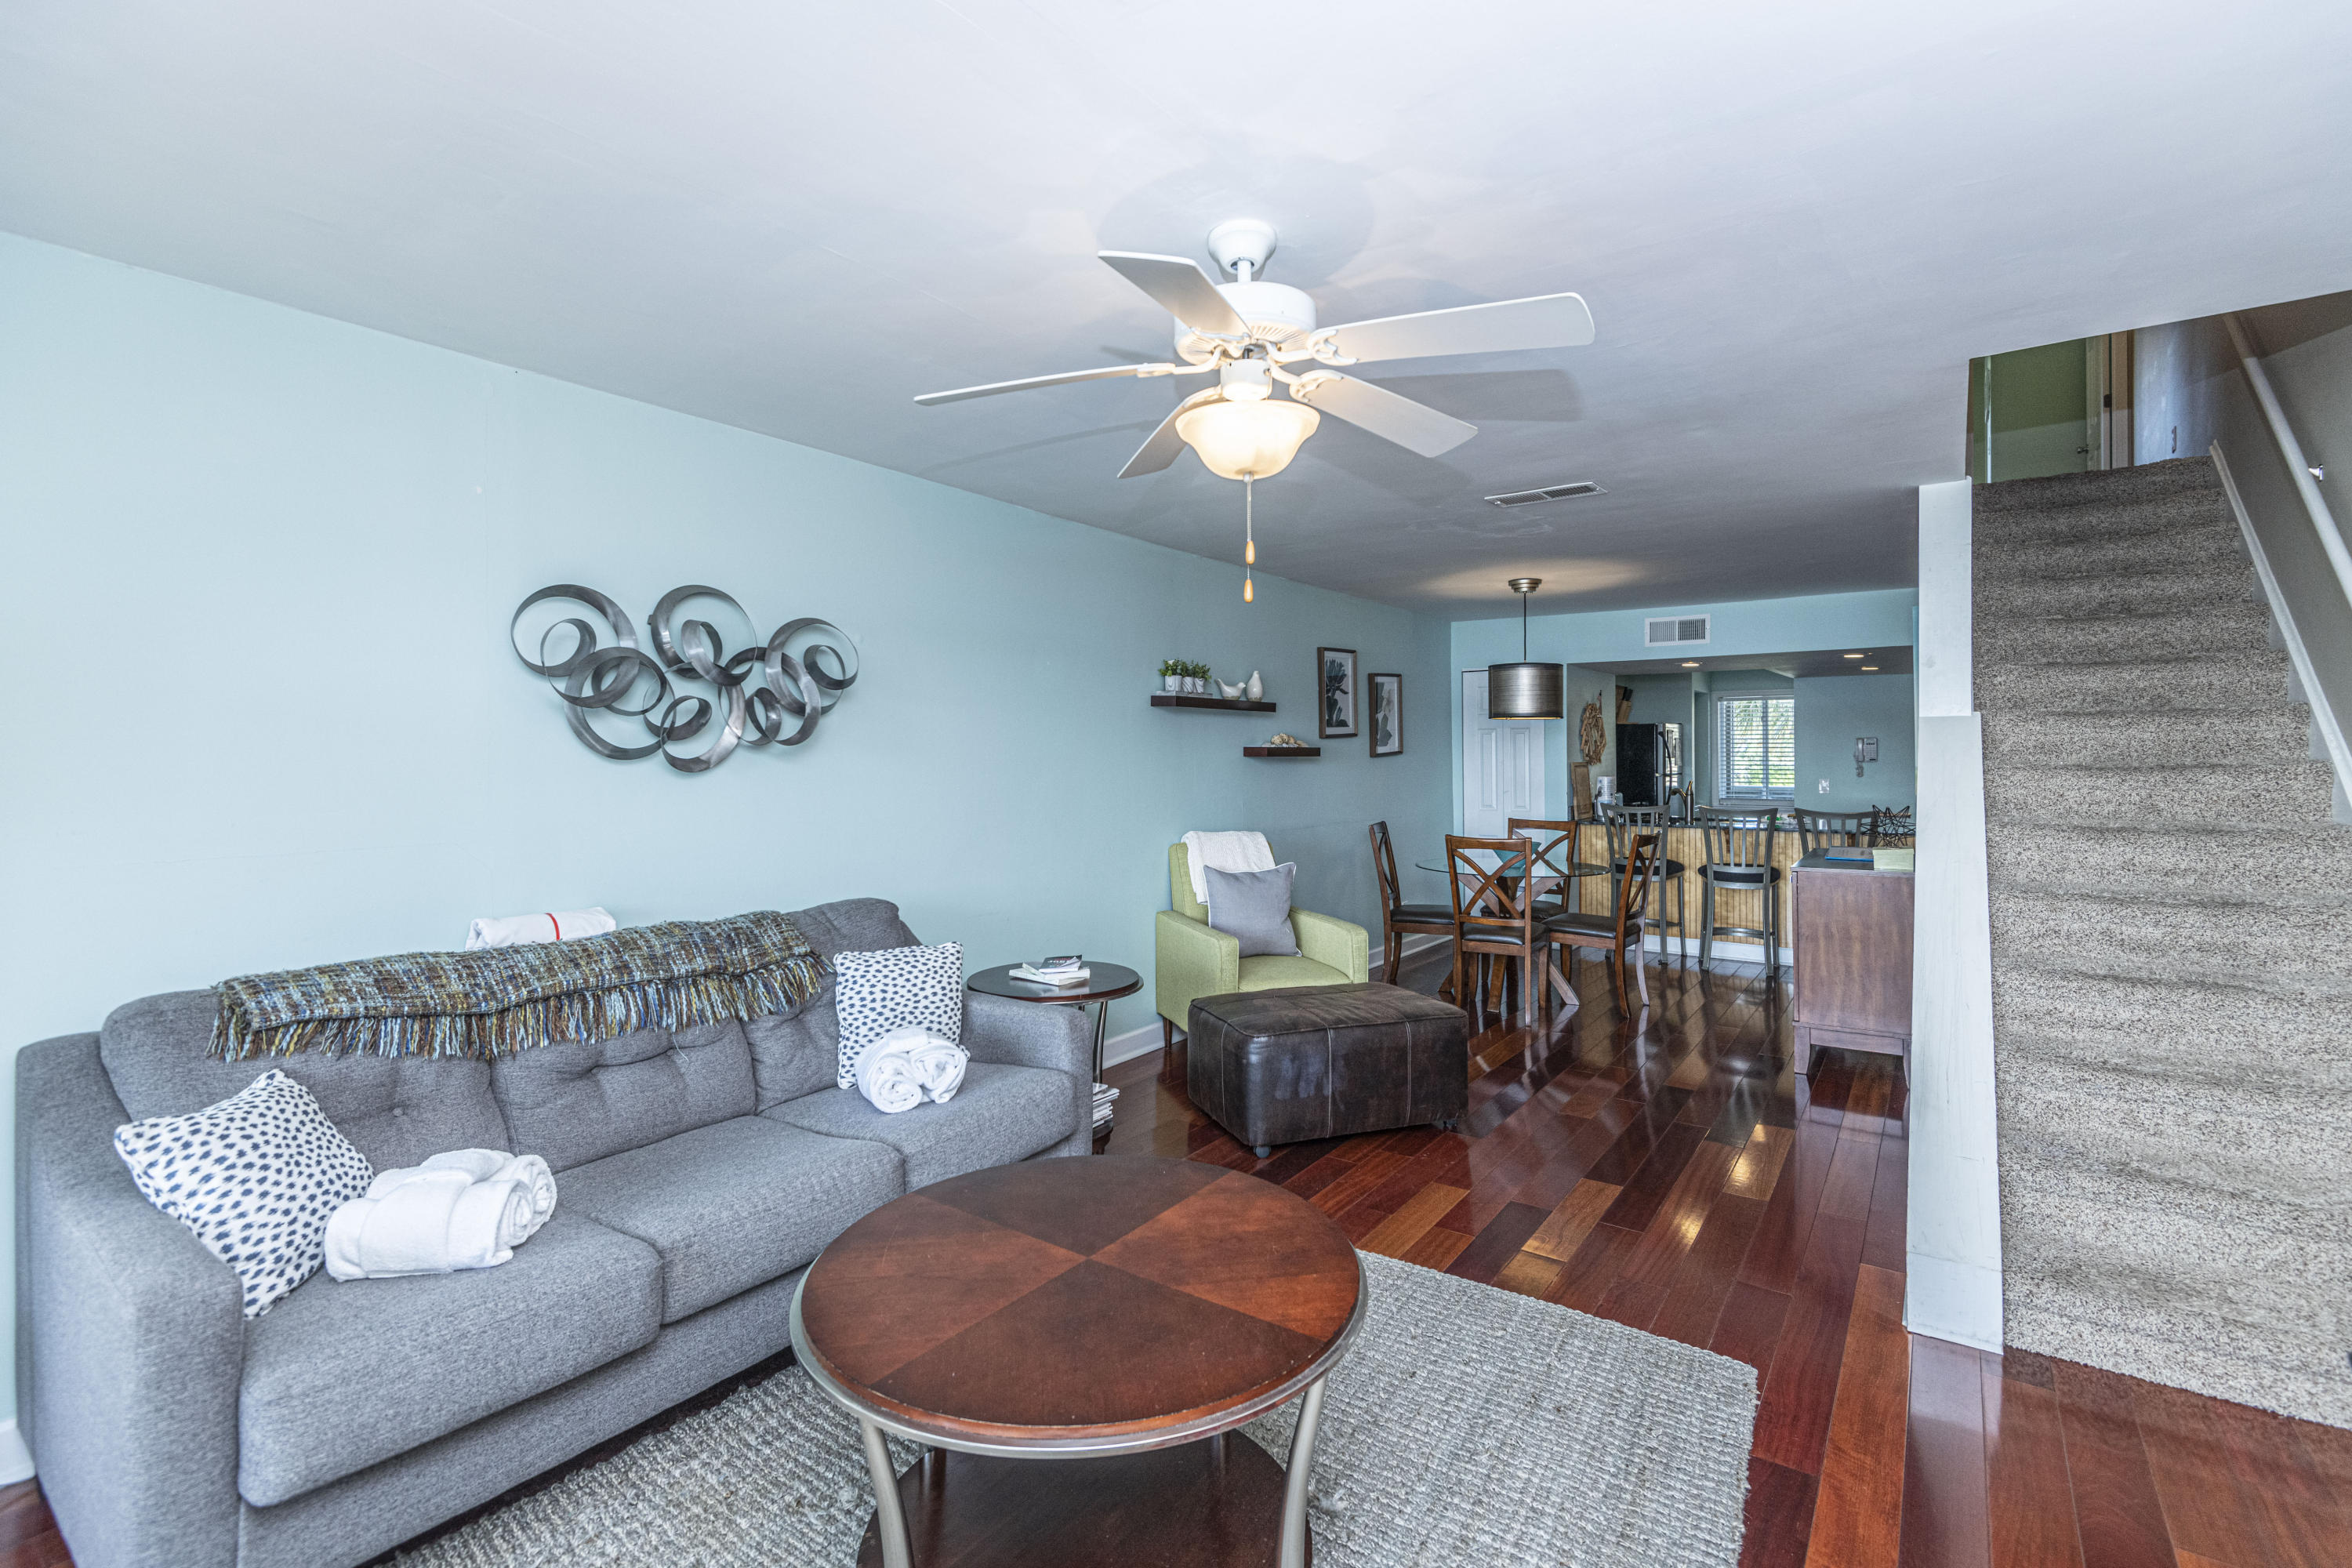 Mariners Cay Homes For Sale - 60 Mariners Cay, Folly Beach, SC - 51